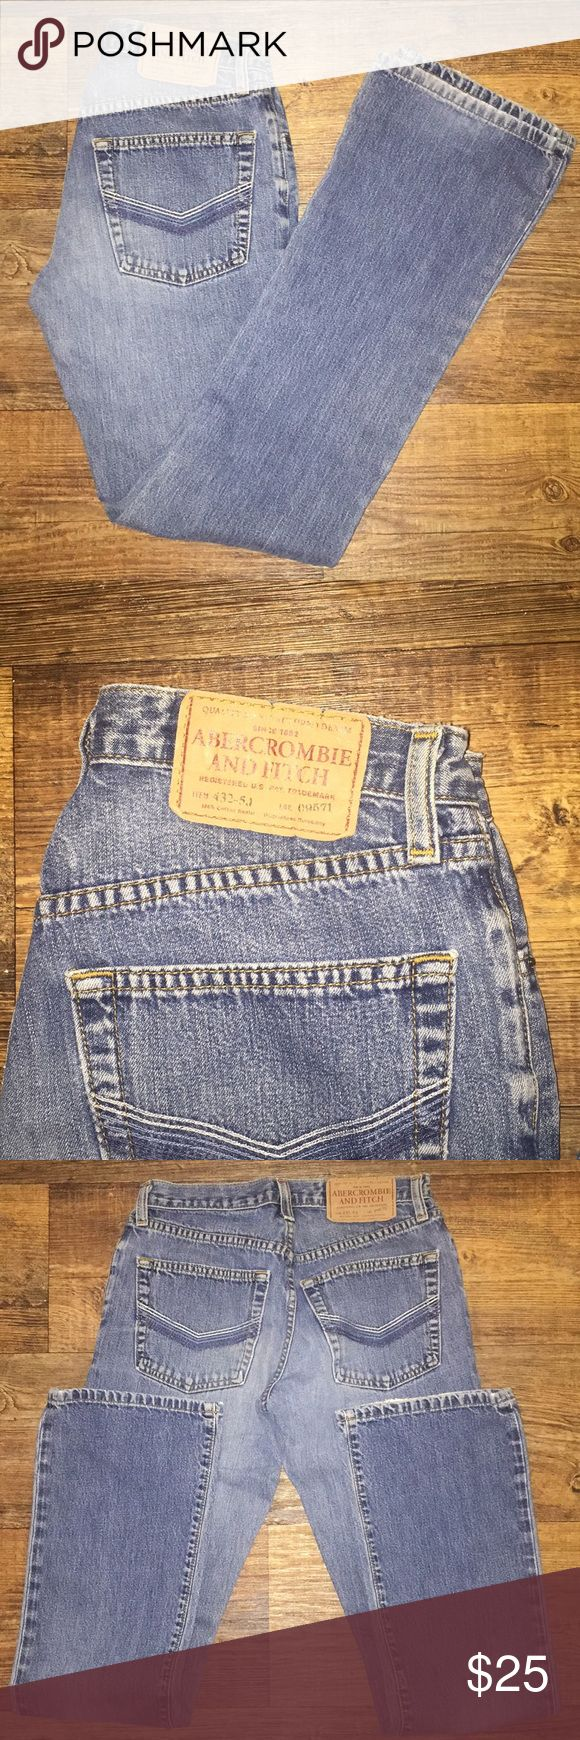 Abercrombie & Fitch 1892 Women's Jeans Size 26•32 Abercrombie & Fitch 1892 Women's Jeans Size 26•32 Abercrombie & Fitch Jeans Straight Leg